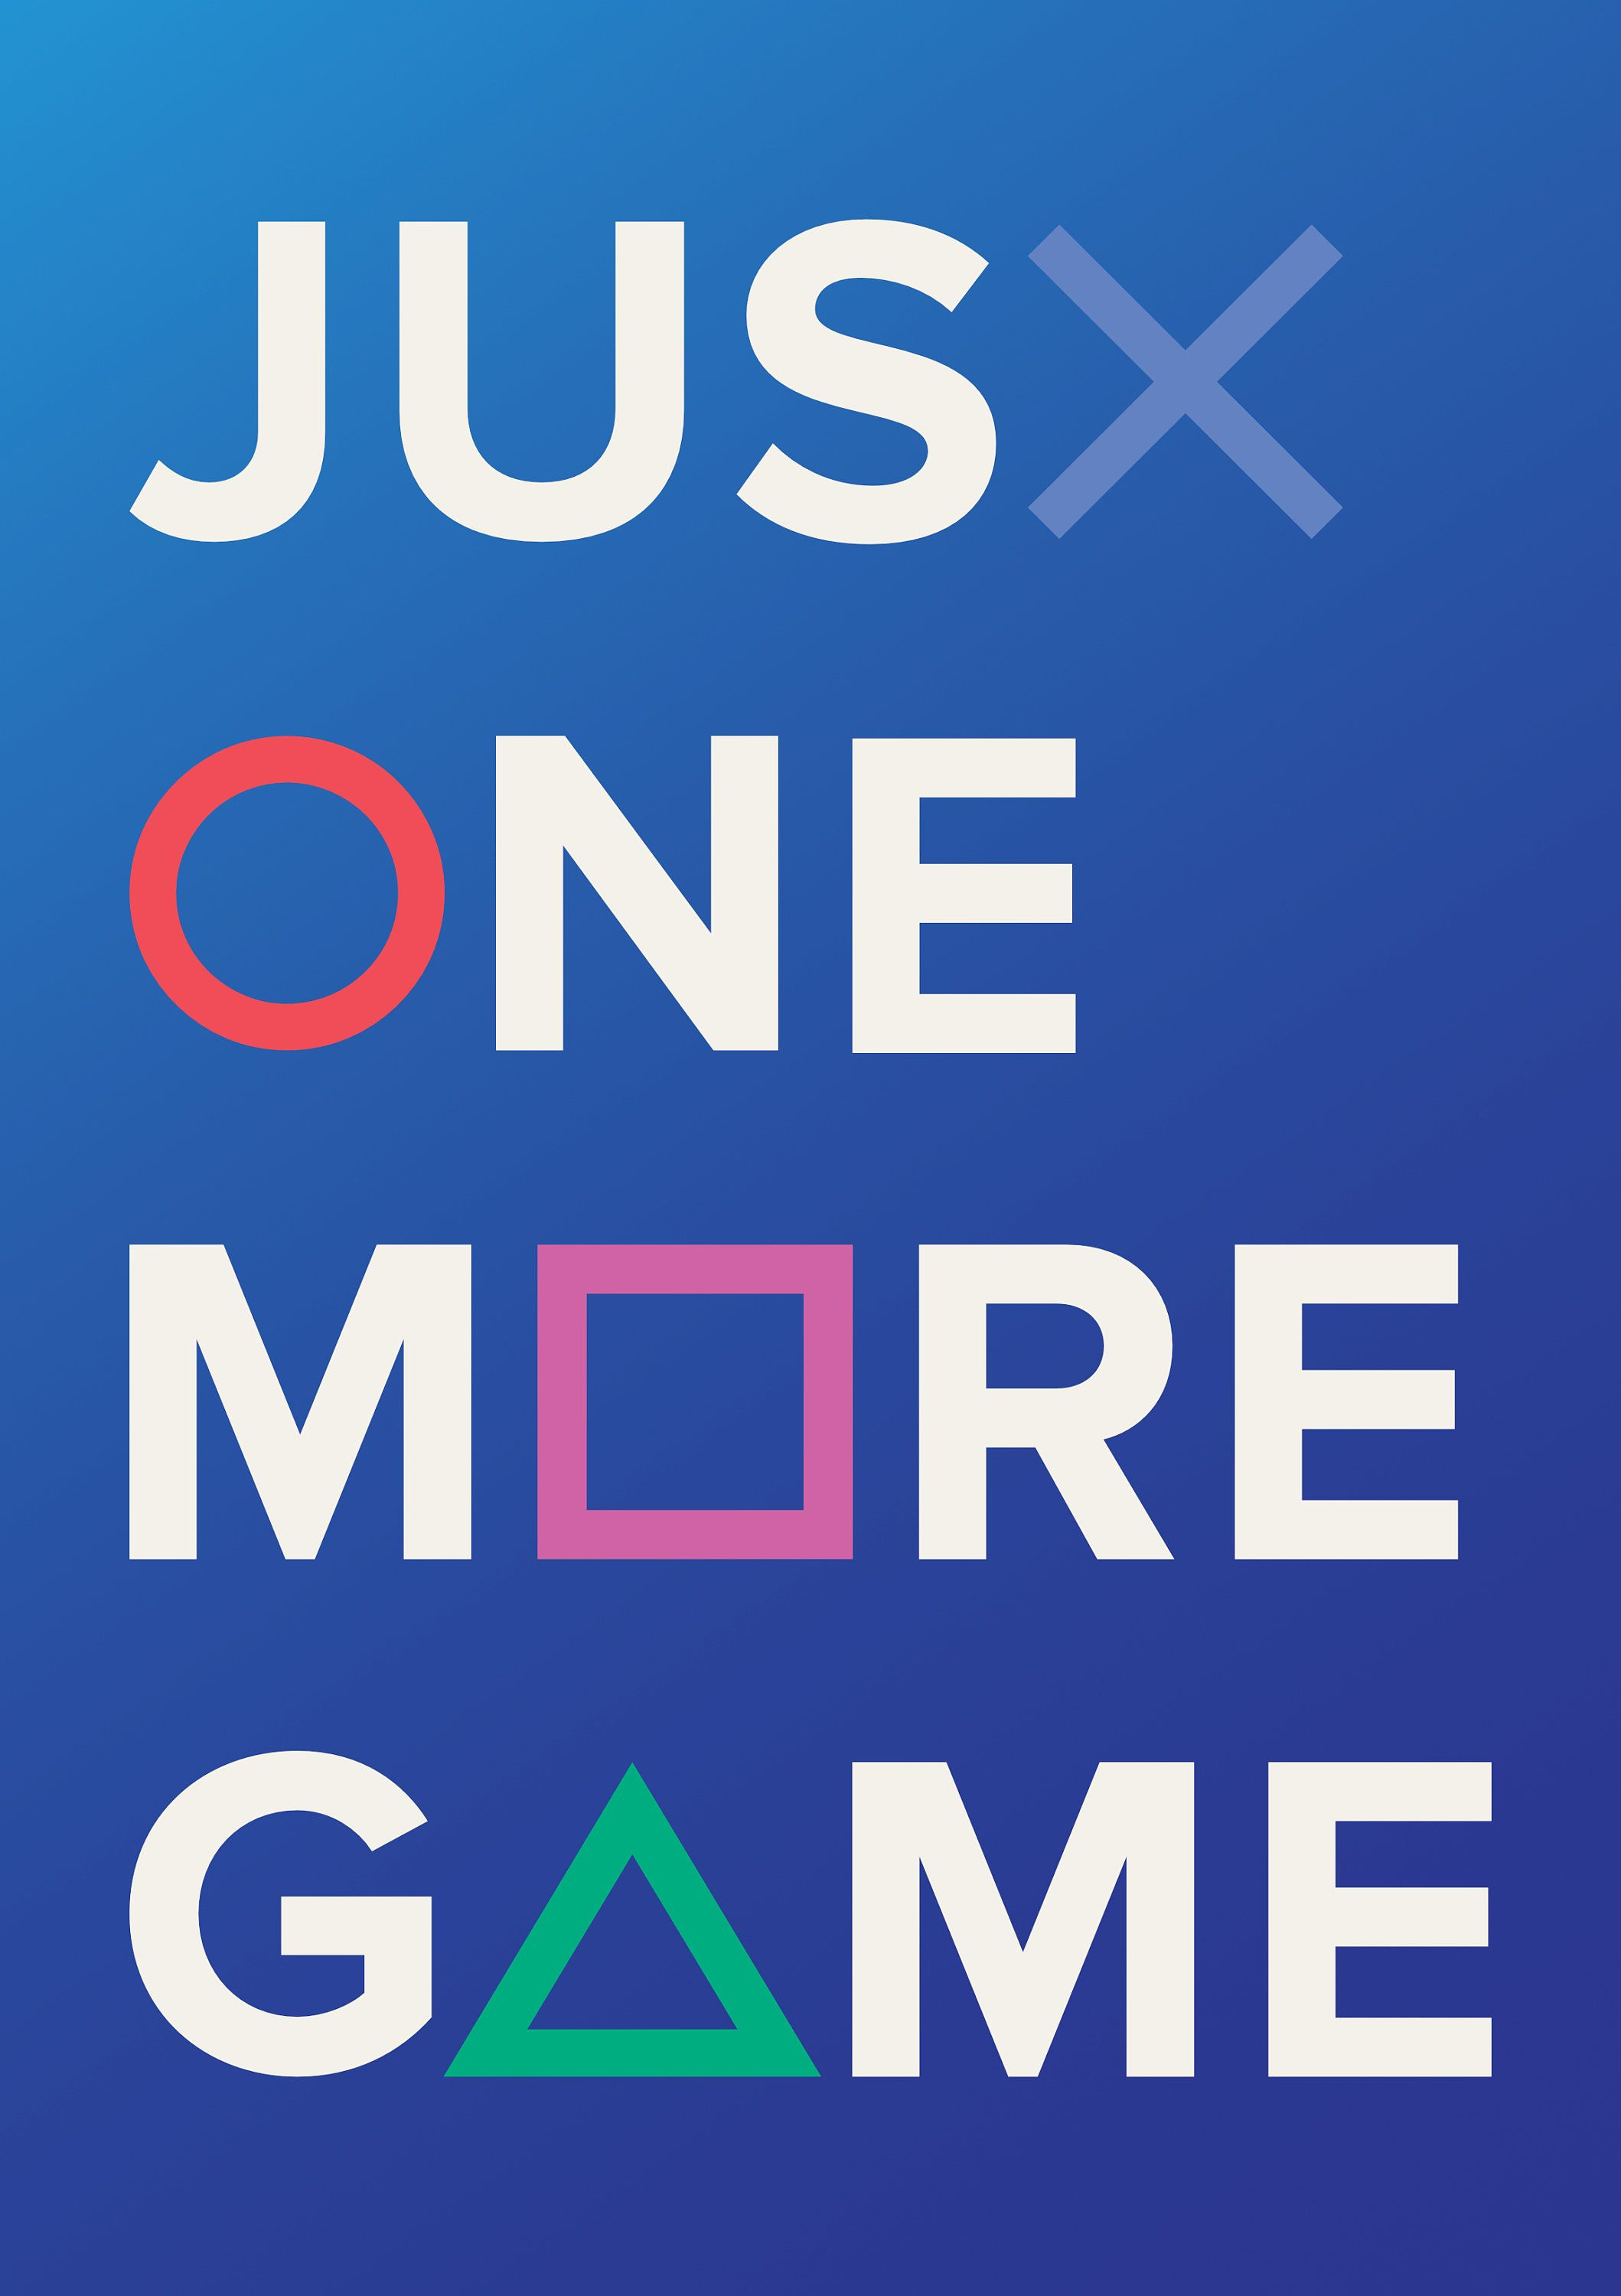 Framed Gaming Poster Playstation Quote Video Gaming Gamer Room Home Art Game Wall Decor Gaming Poster Ps4 Gaming Posters Video Game Wall Art Gamer Room